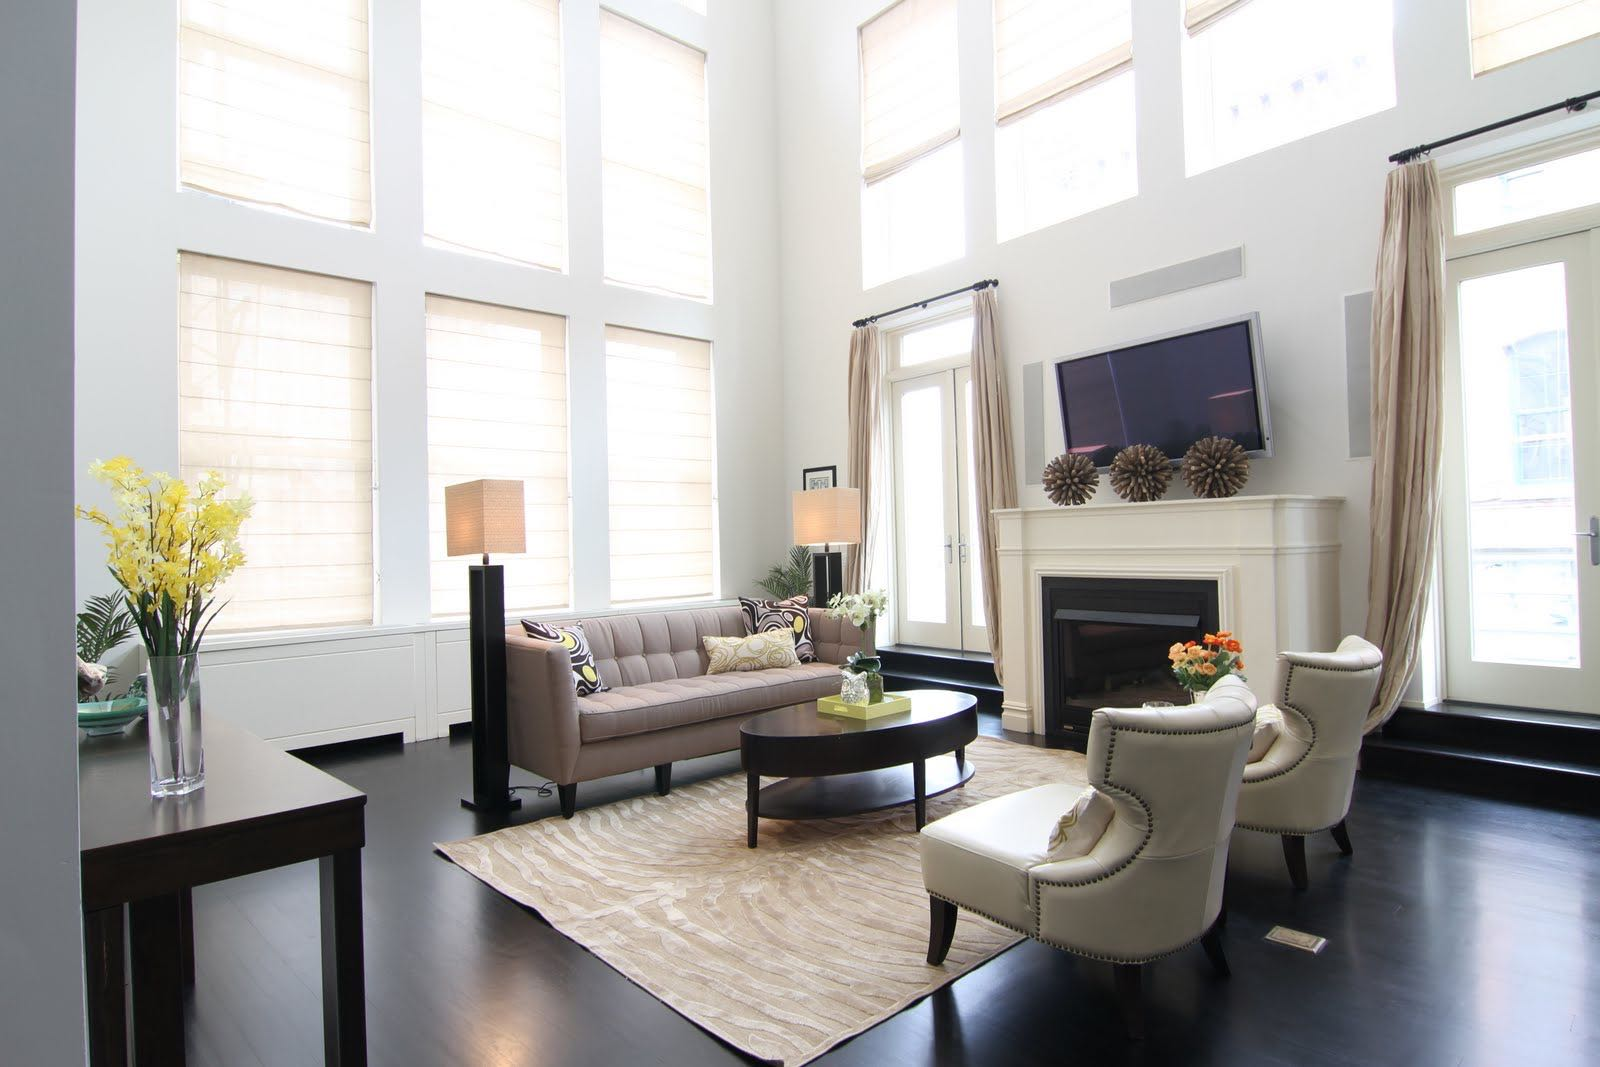 The apartment felt tired and the room felt small.  Adding correctly scaled furniture to any room will make it feel so much larger and so much more valuable.